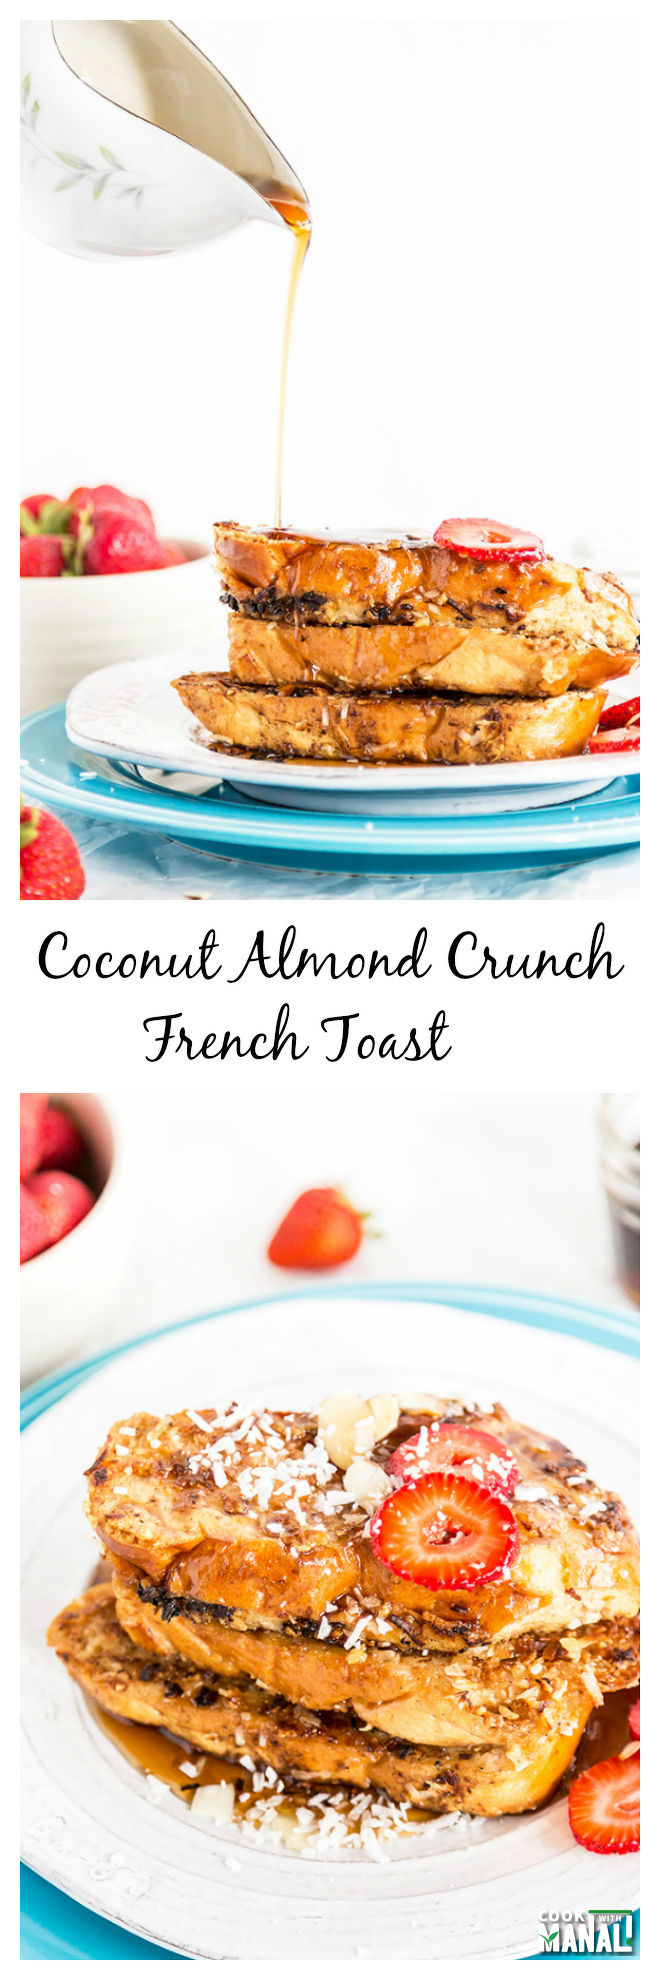 Coconut Almond Crunch French Toast Collage